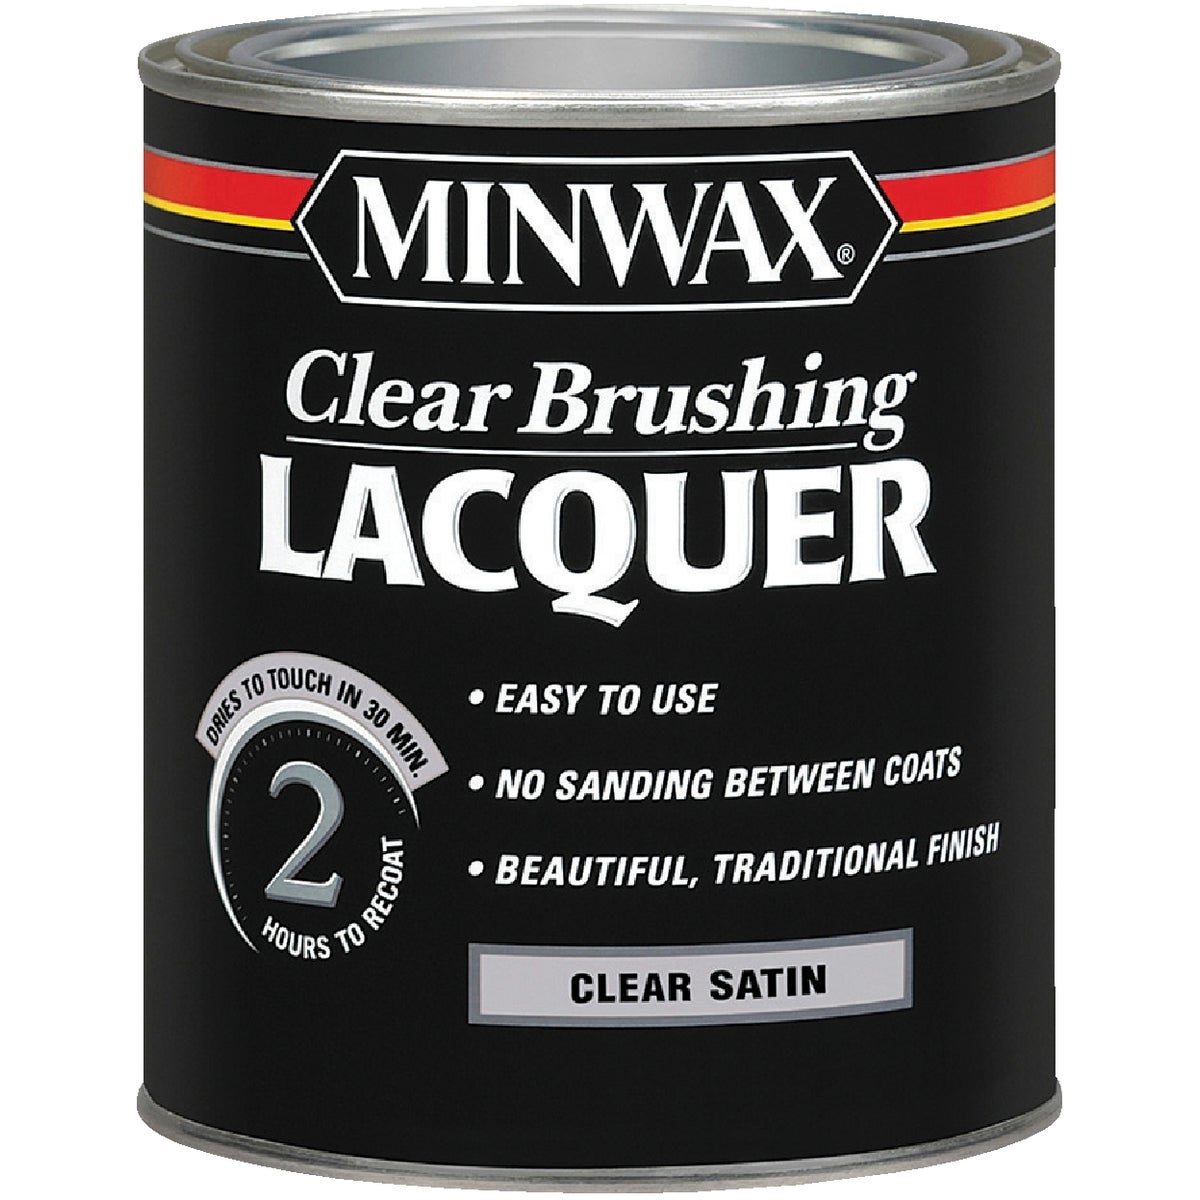 CLEAR SATIN LACQUER